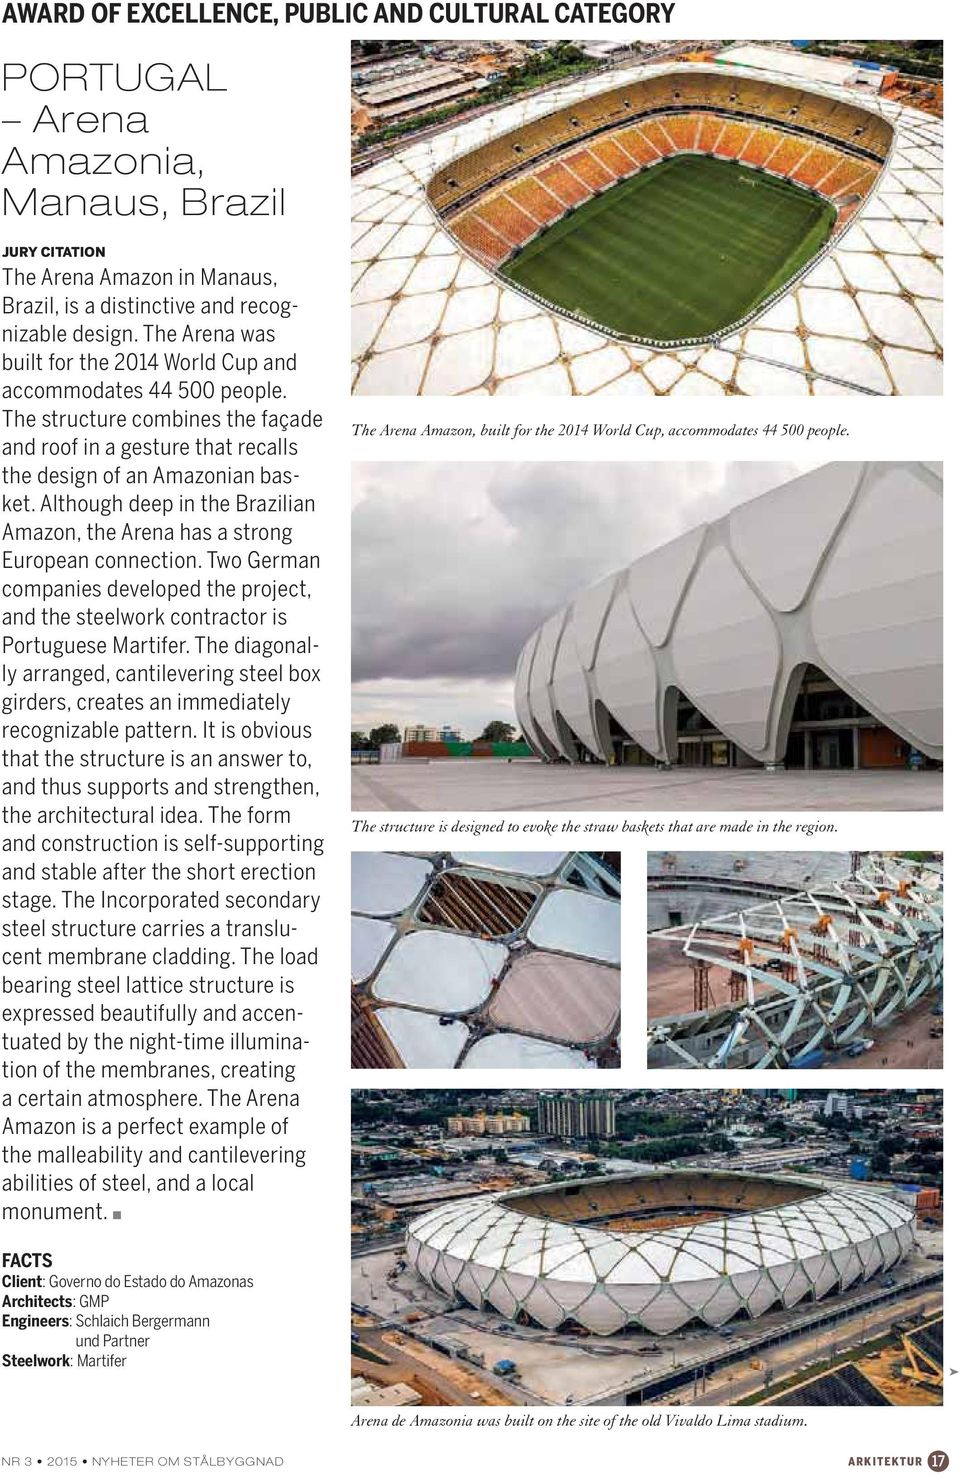 Although deep in the Brazilian Amazon, the Arena has a strong European connection. Two German companies developed the project, and the steelwork contractor is Portuguese Martifer.